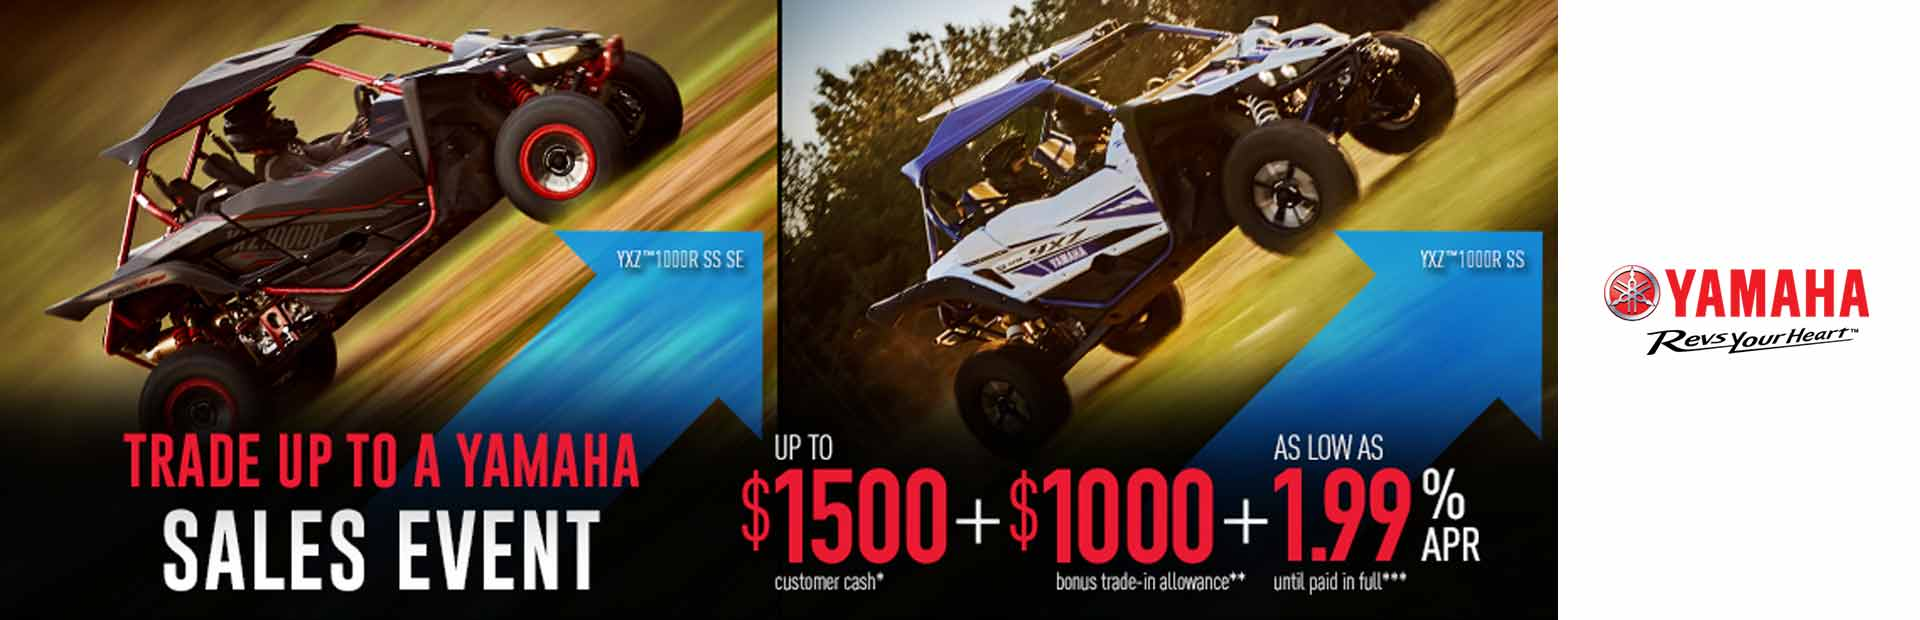 Yamaha: Up To $1500 + $1000 + As Low As 1.99% APR